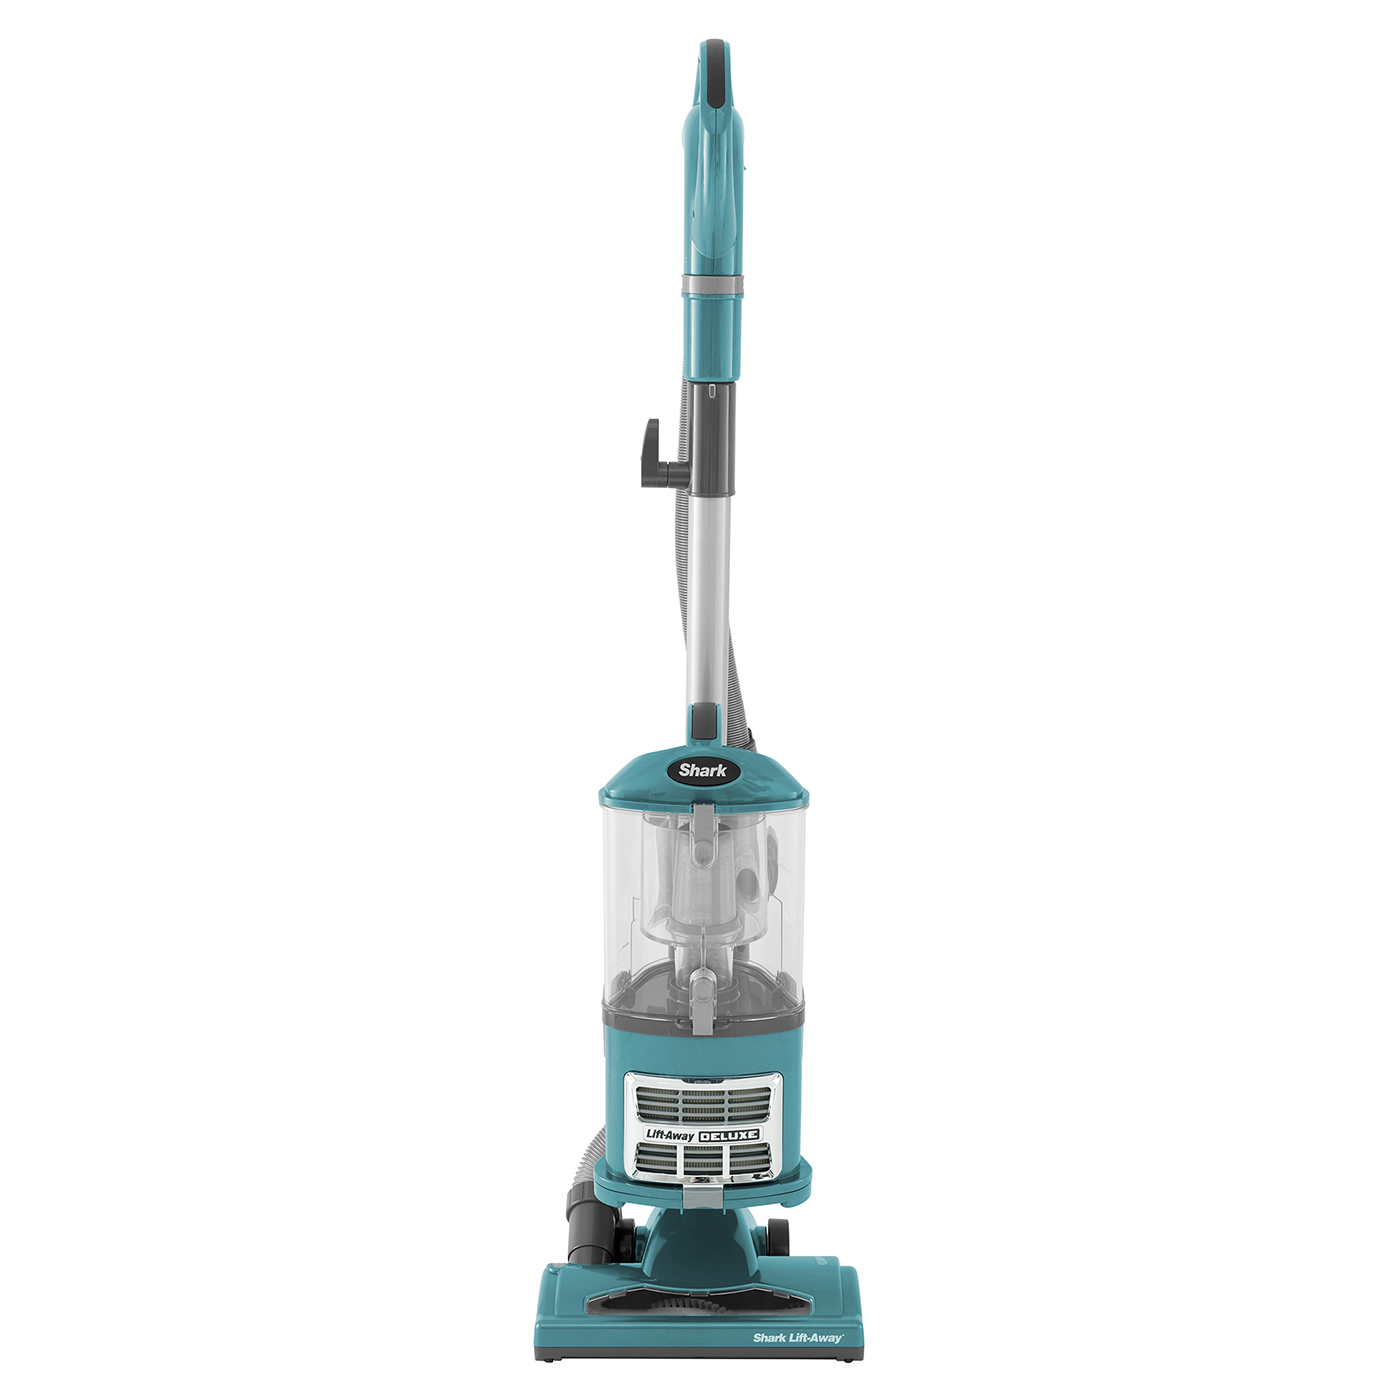 The humble vacuum cleaner is an essential bit of kit for any home, and the easiest and fastest way to keep your house clean. Getting the best vacuum cleaner is about choosing the right model for.